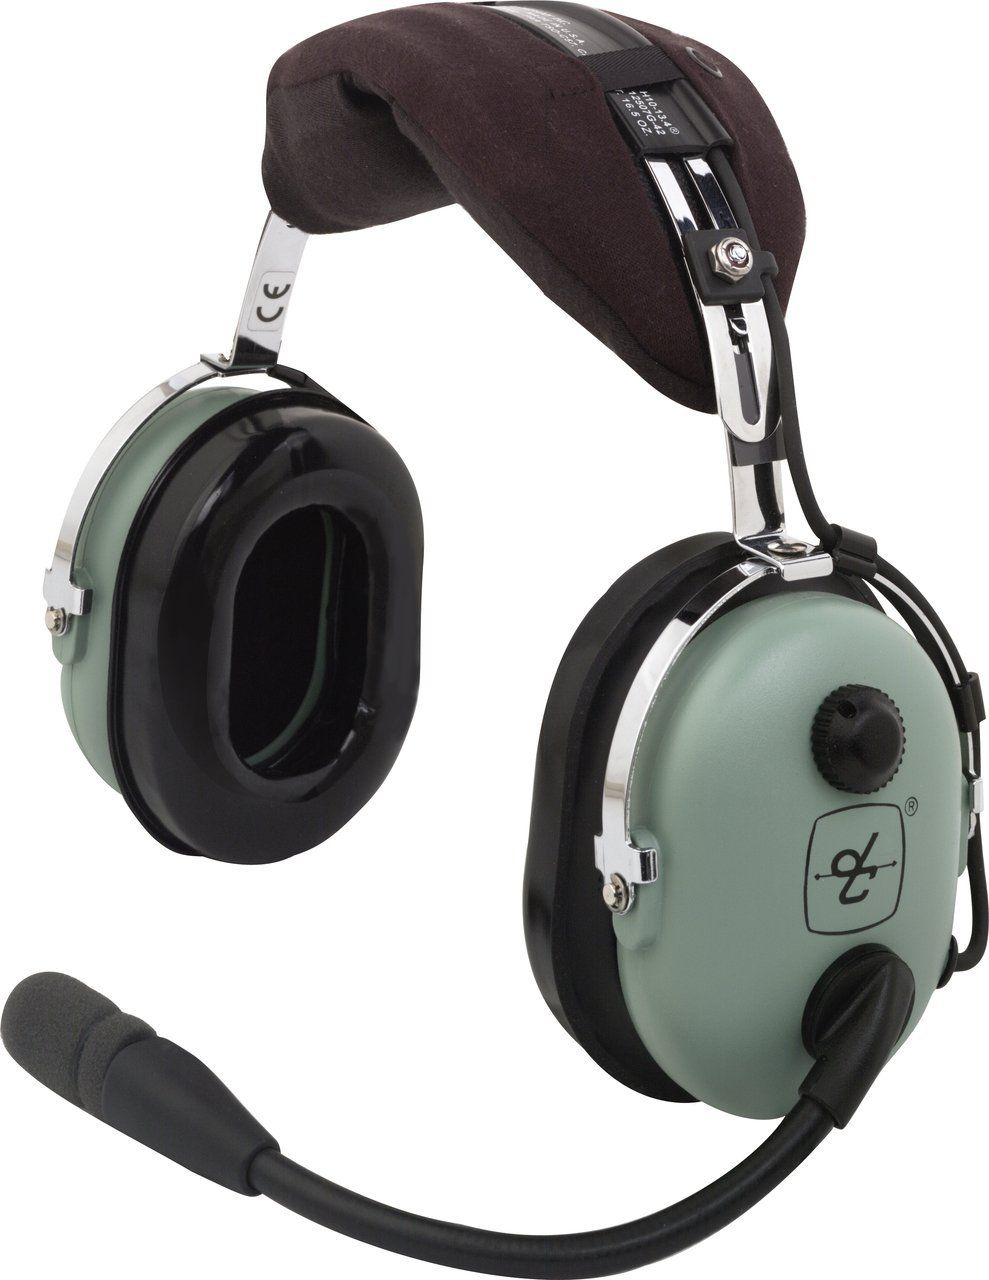 DAVID CLARK H10-13S HEADPHONE AERONÁUTICO ESTÉREO PLUGUE DUPLO